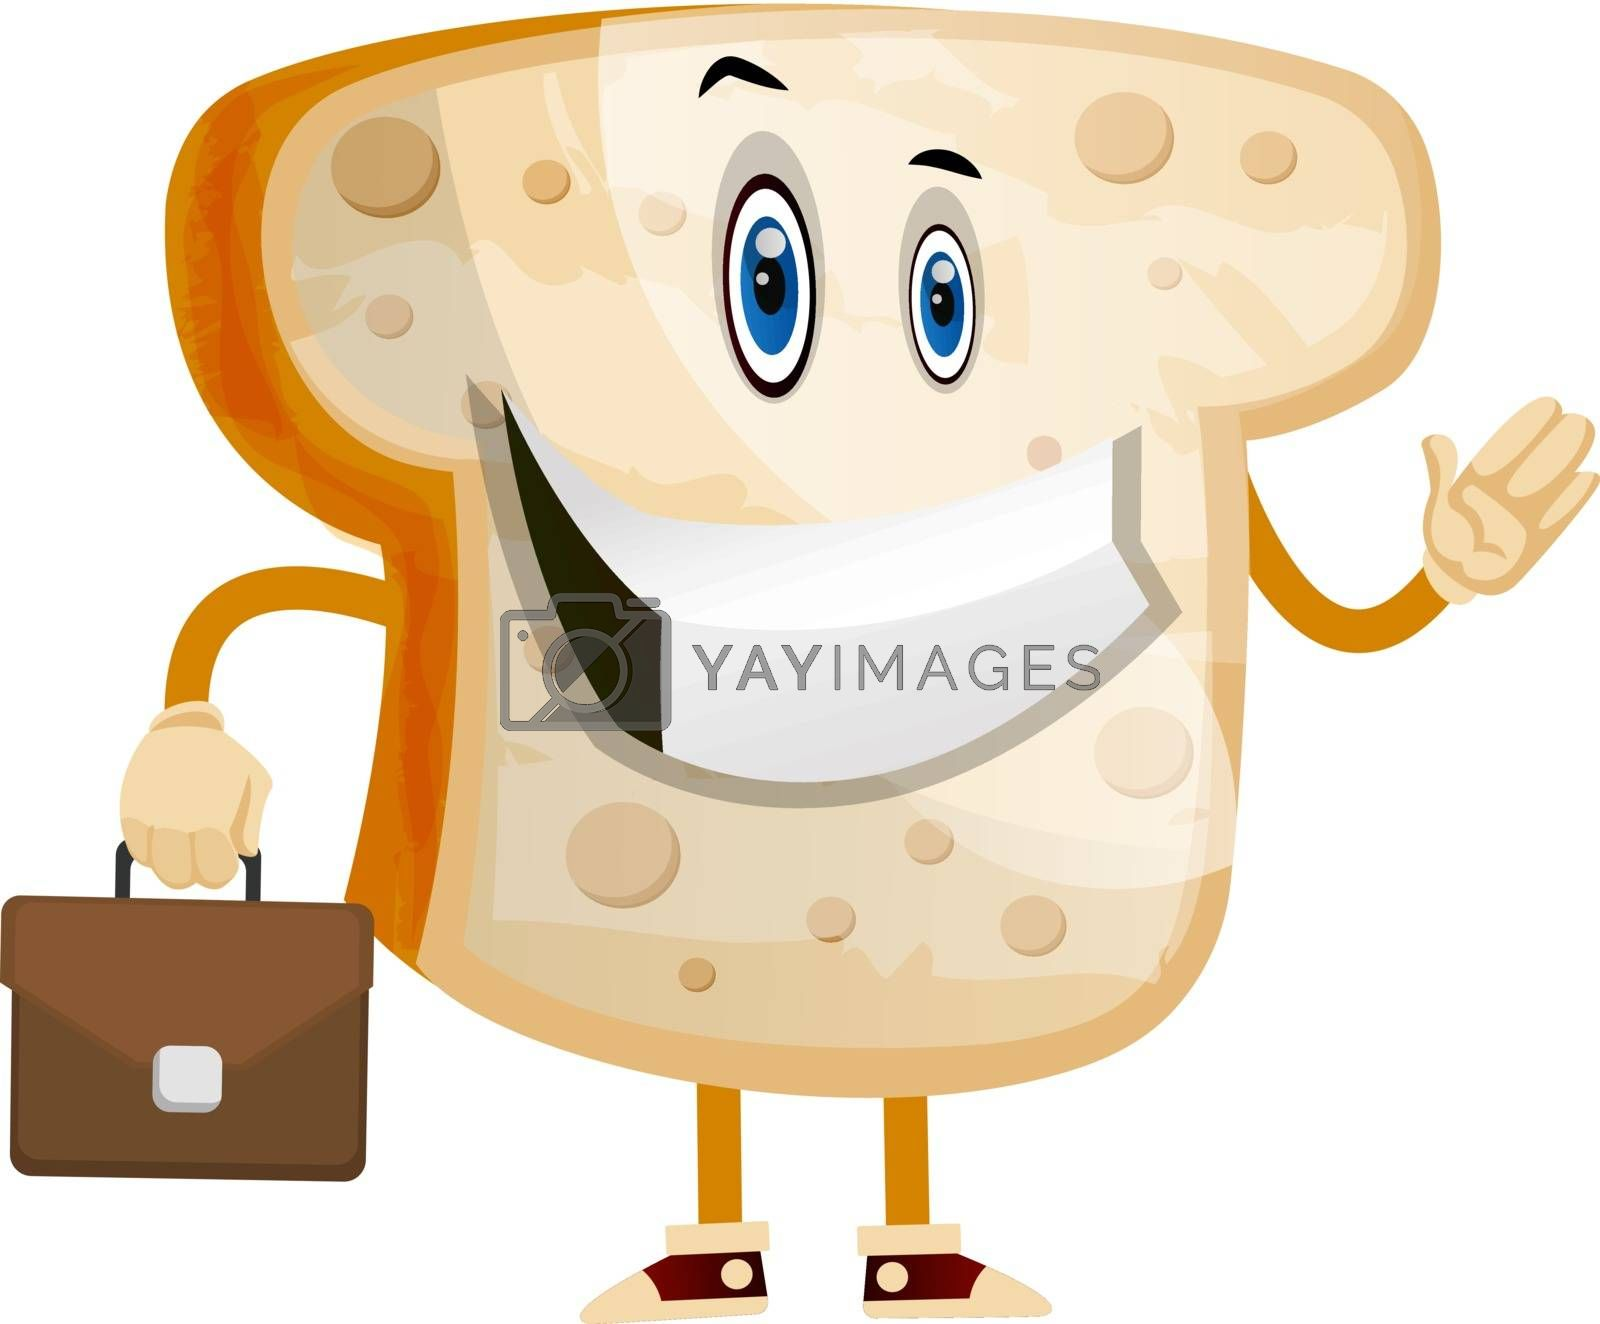 Royalty free image of Business Toast illustration vector on white background by Morphart